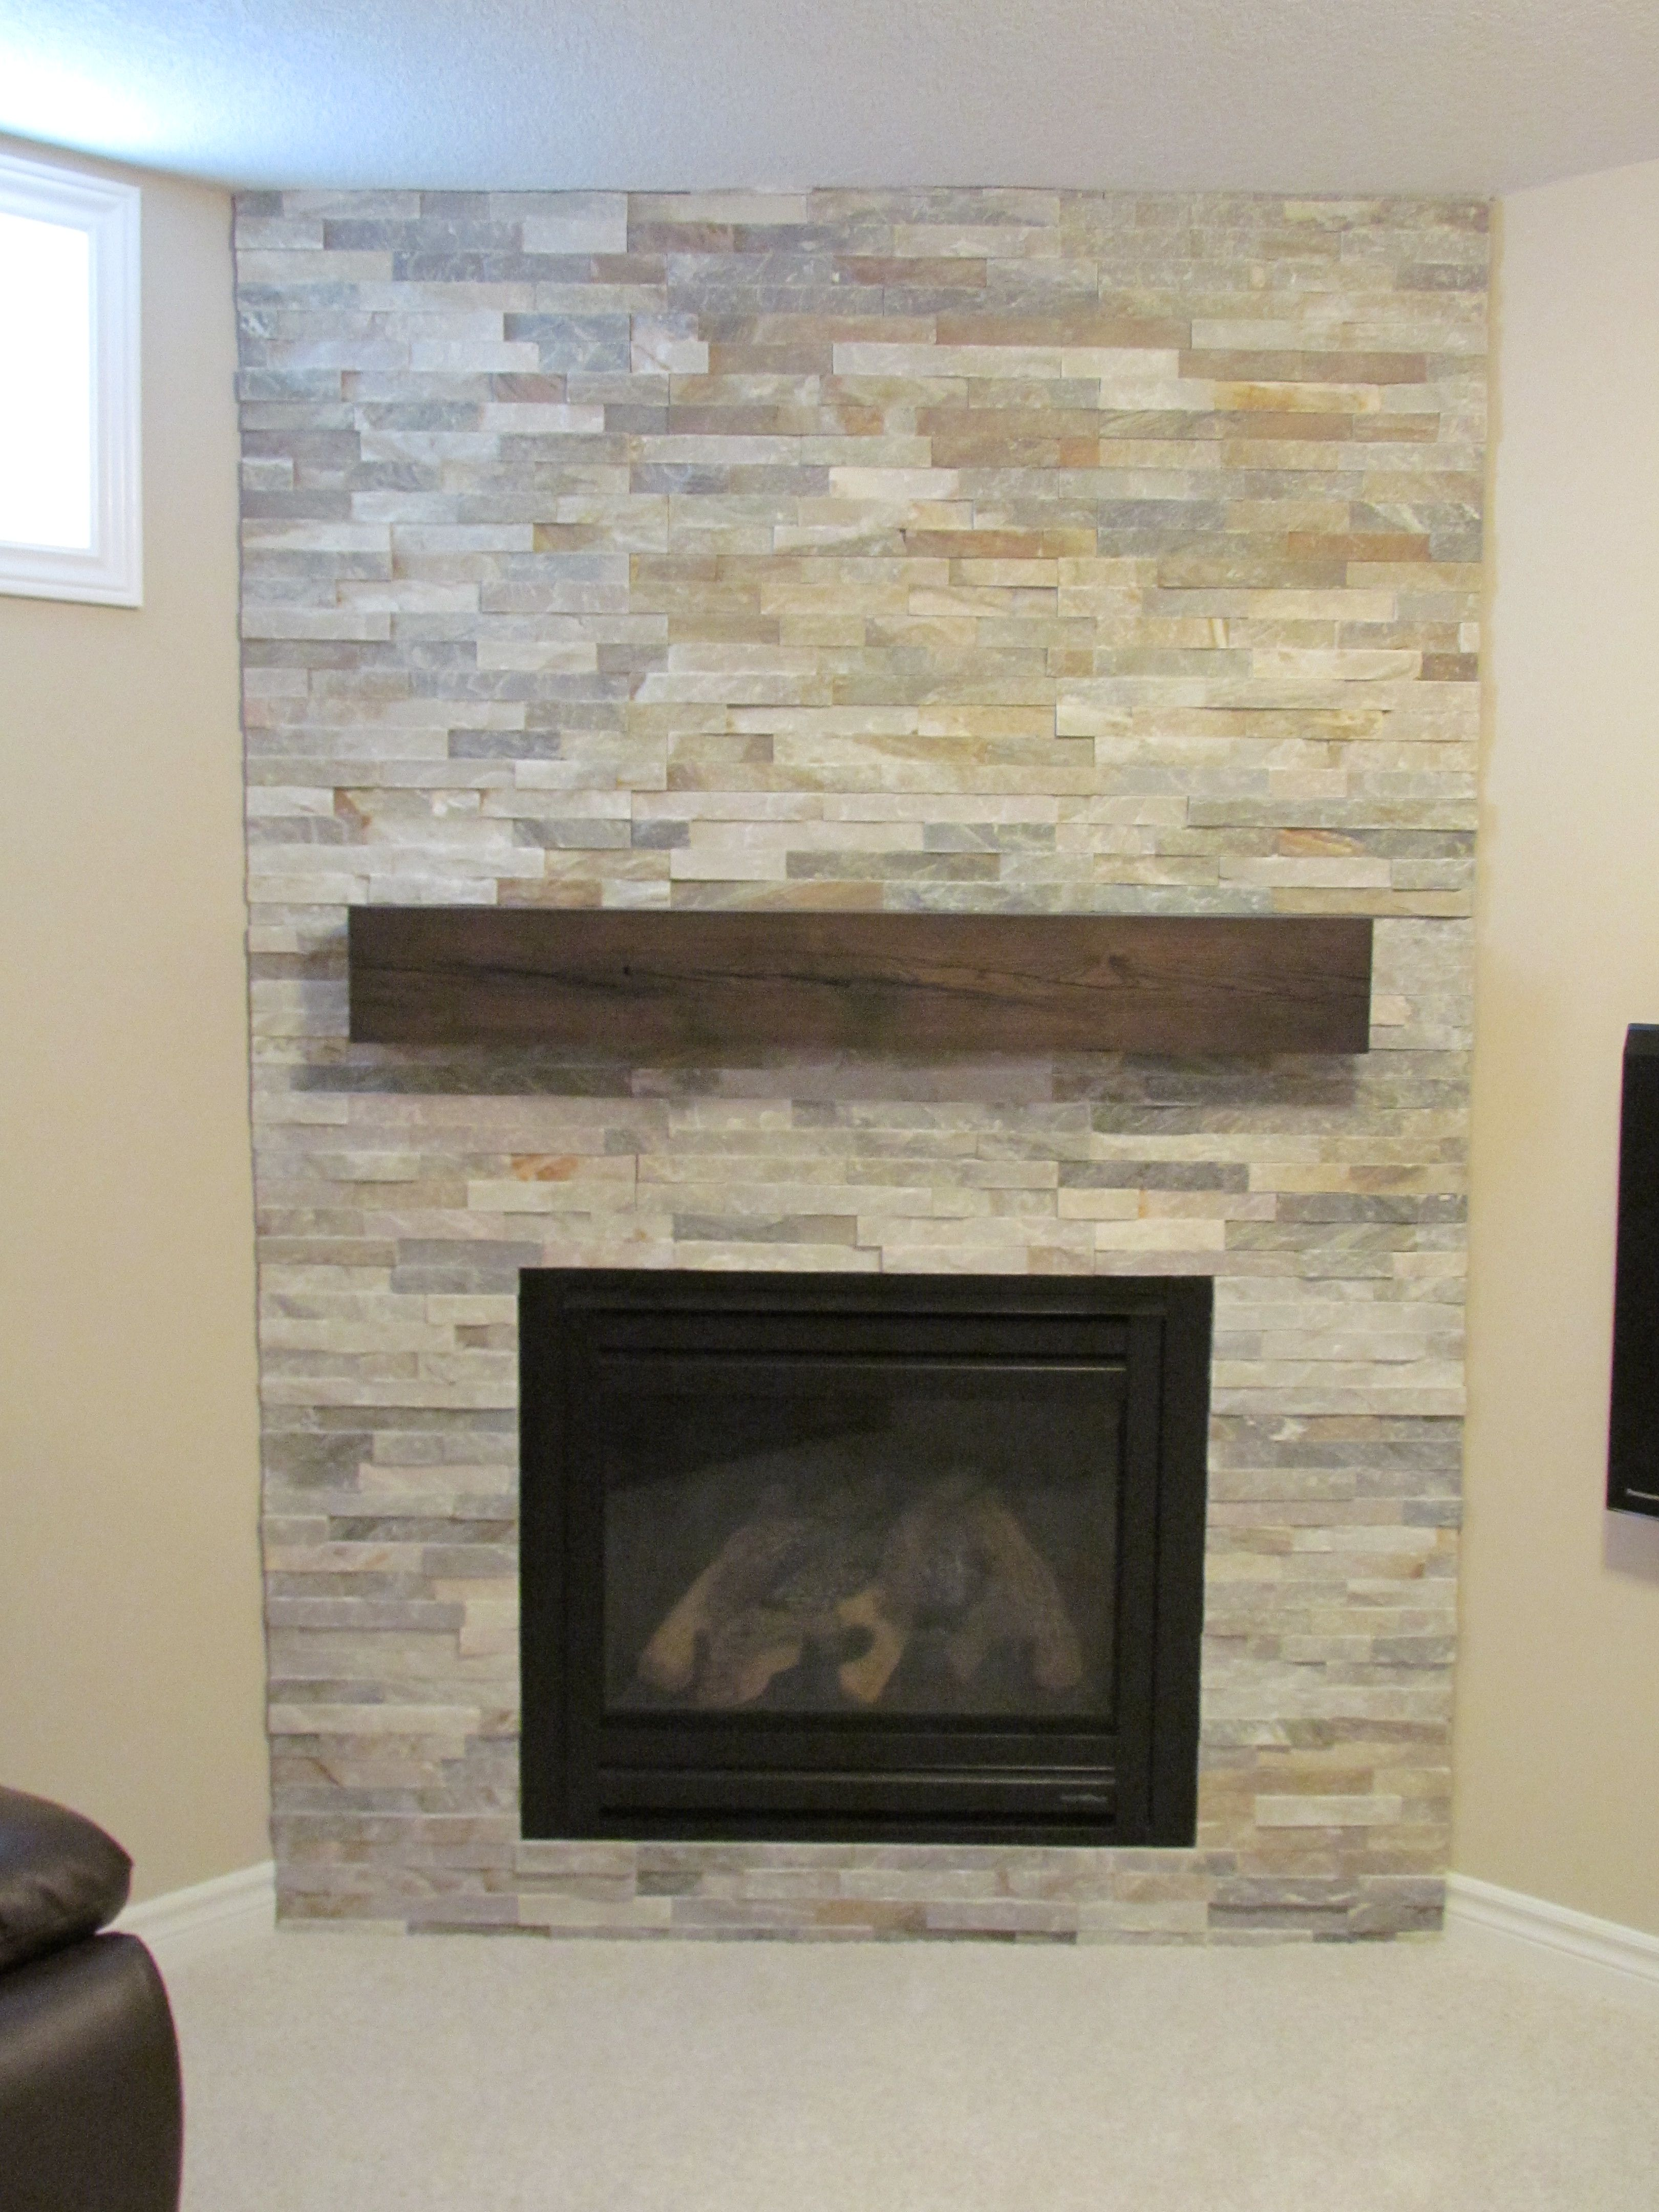 Ledge Stone Fireplace With Rustic Reclaimed Wood Mantel